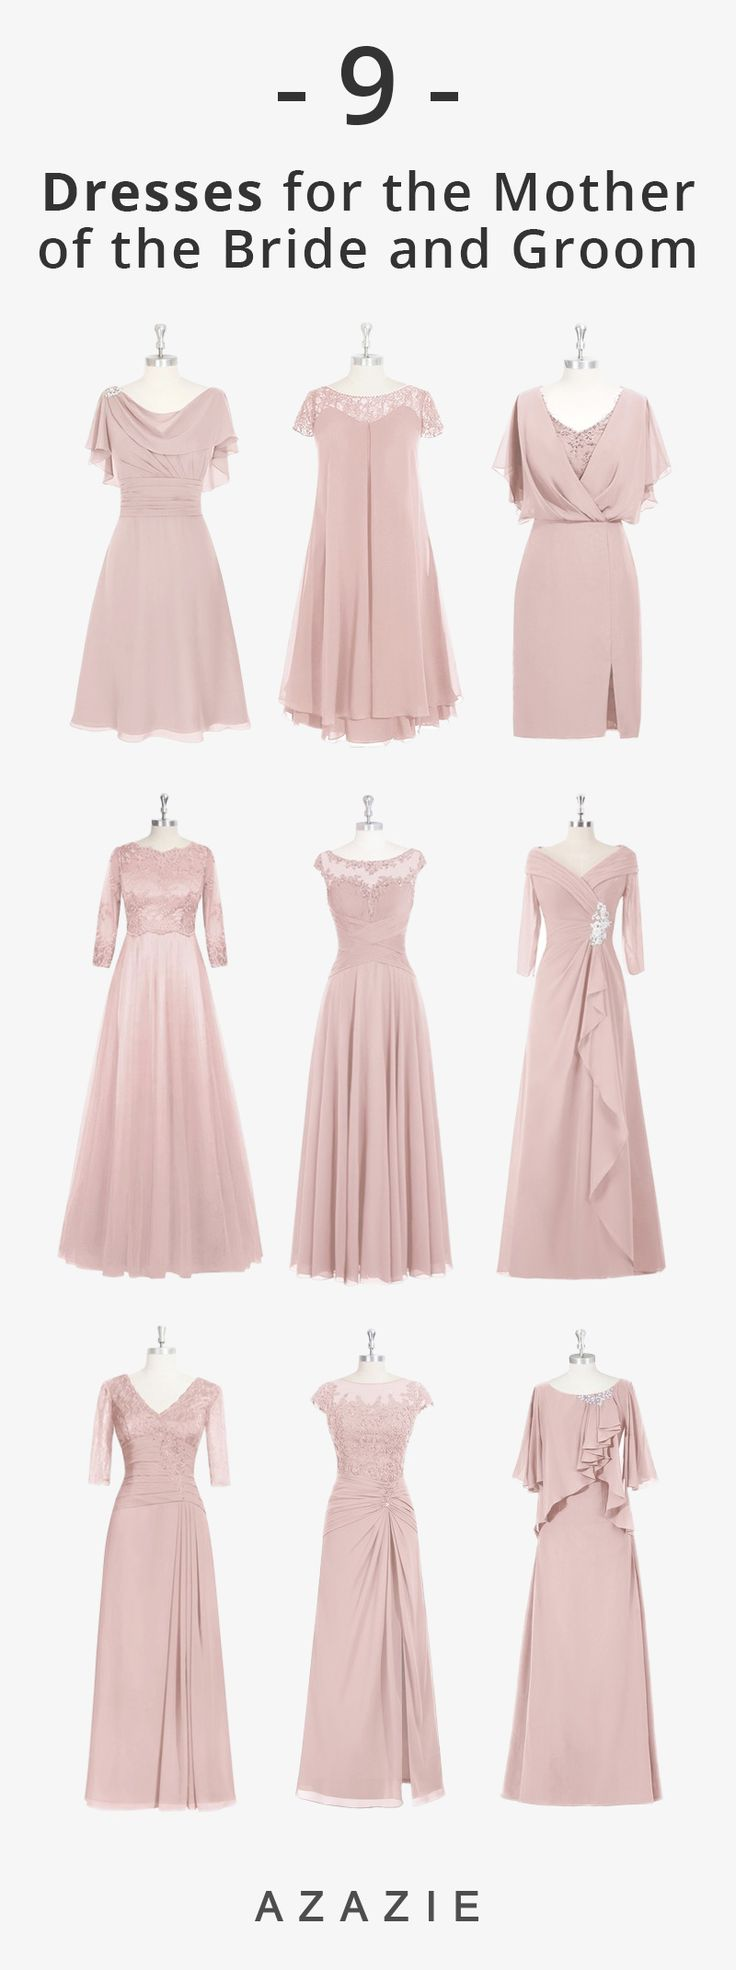 Azazie Is The Online Destination For Special Occasion